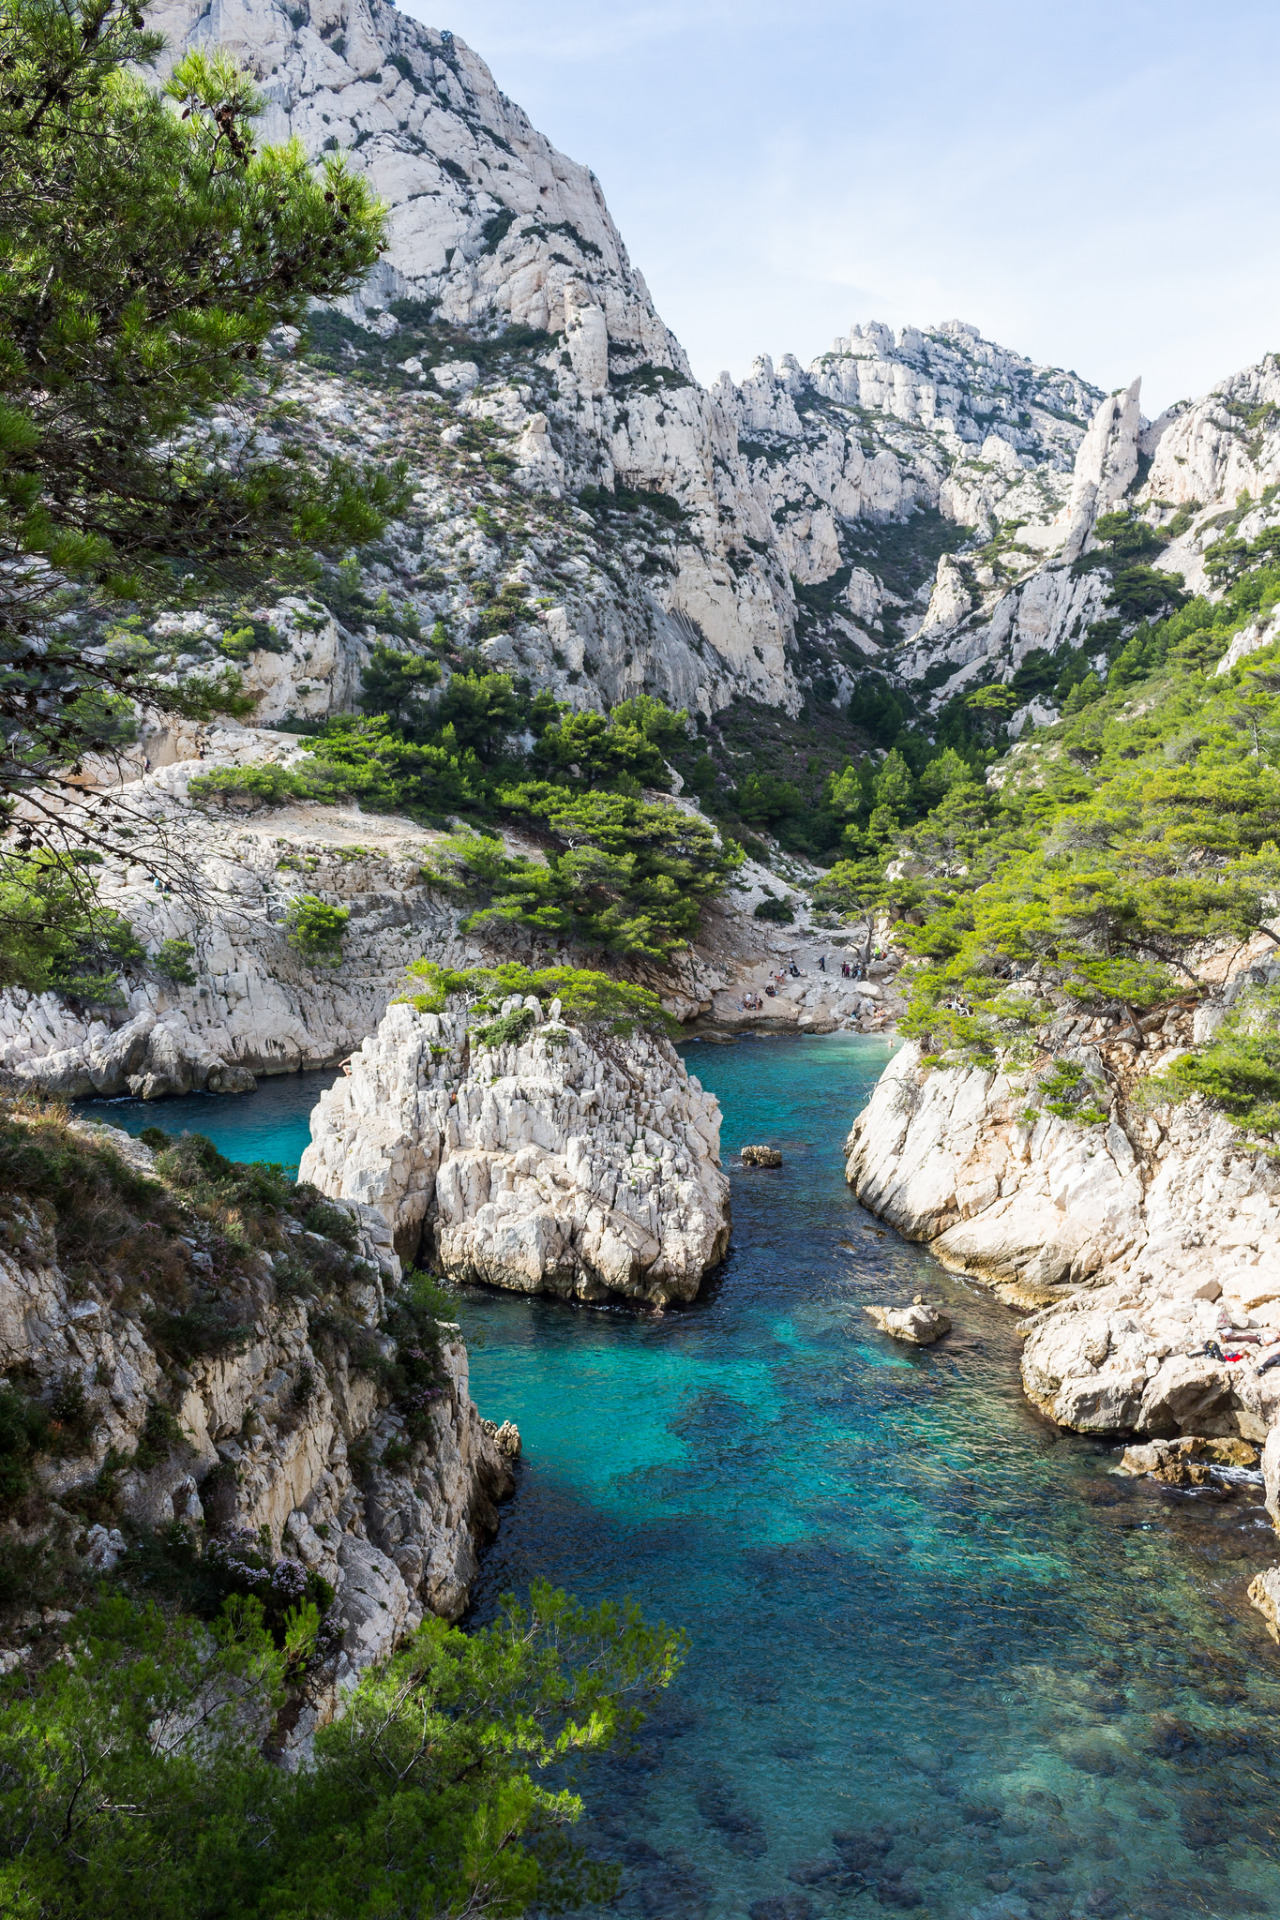 Les Calanques, Marseille / France